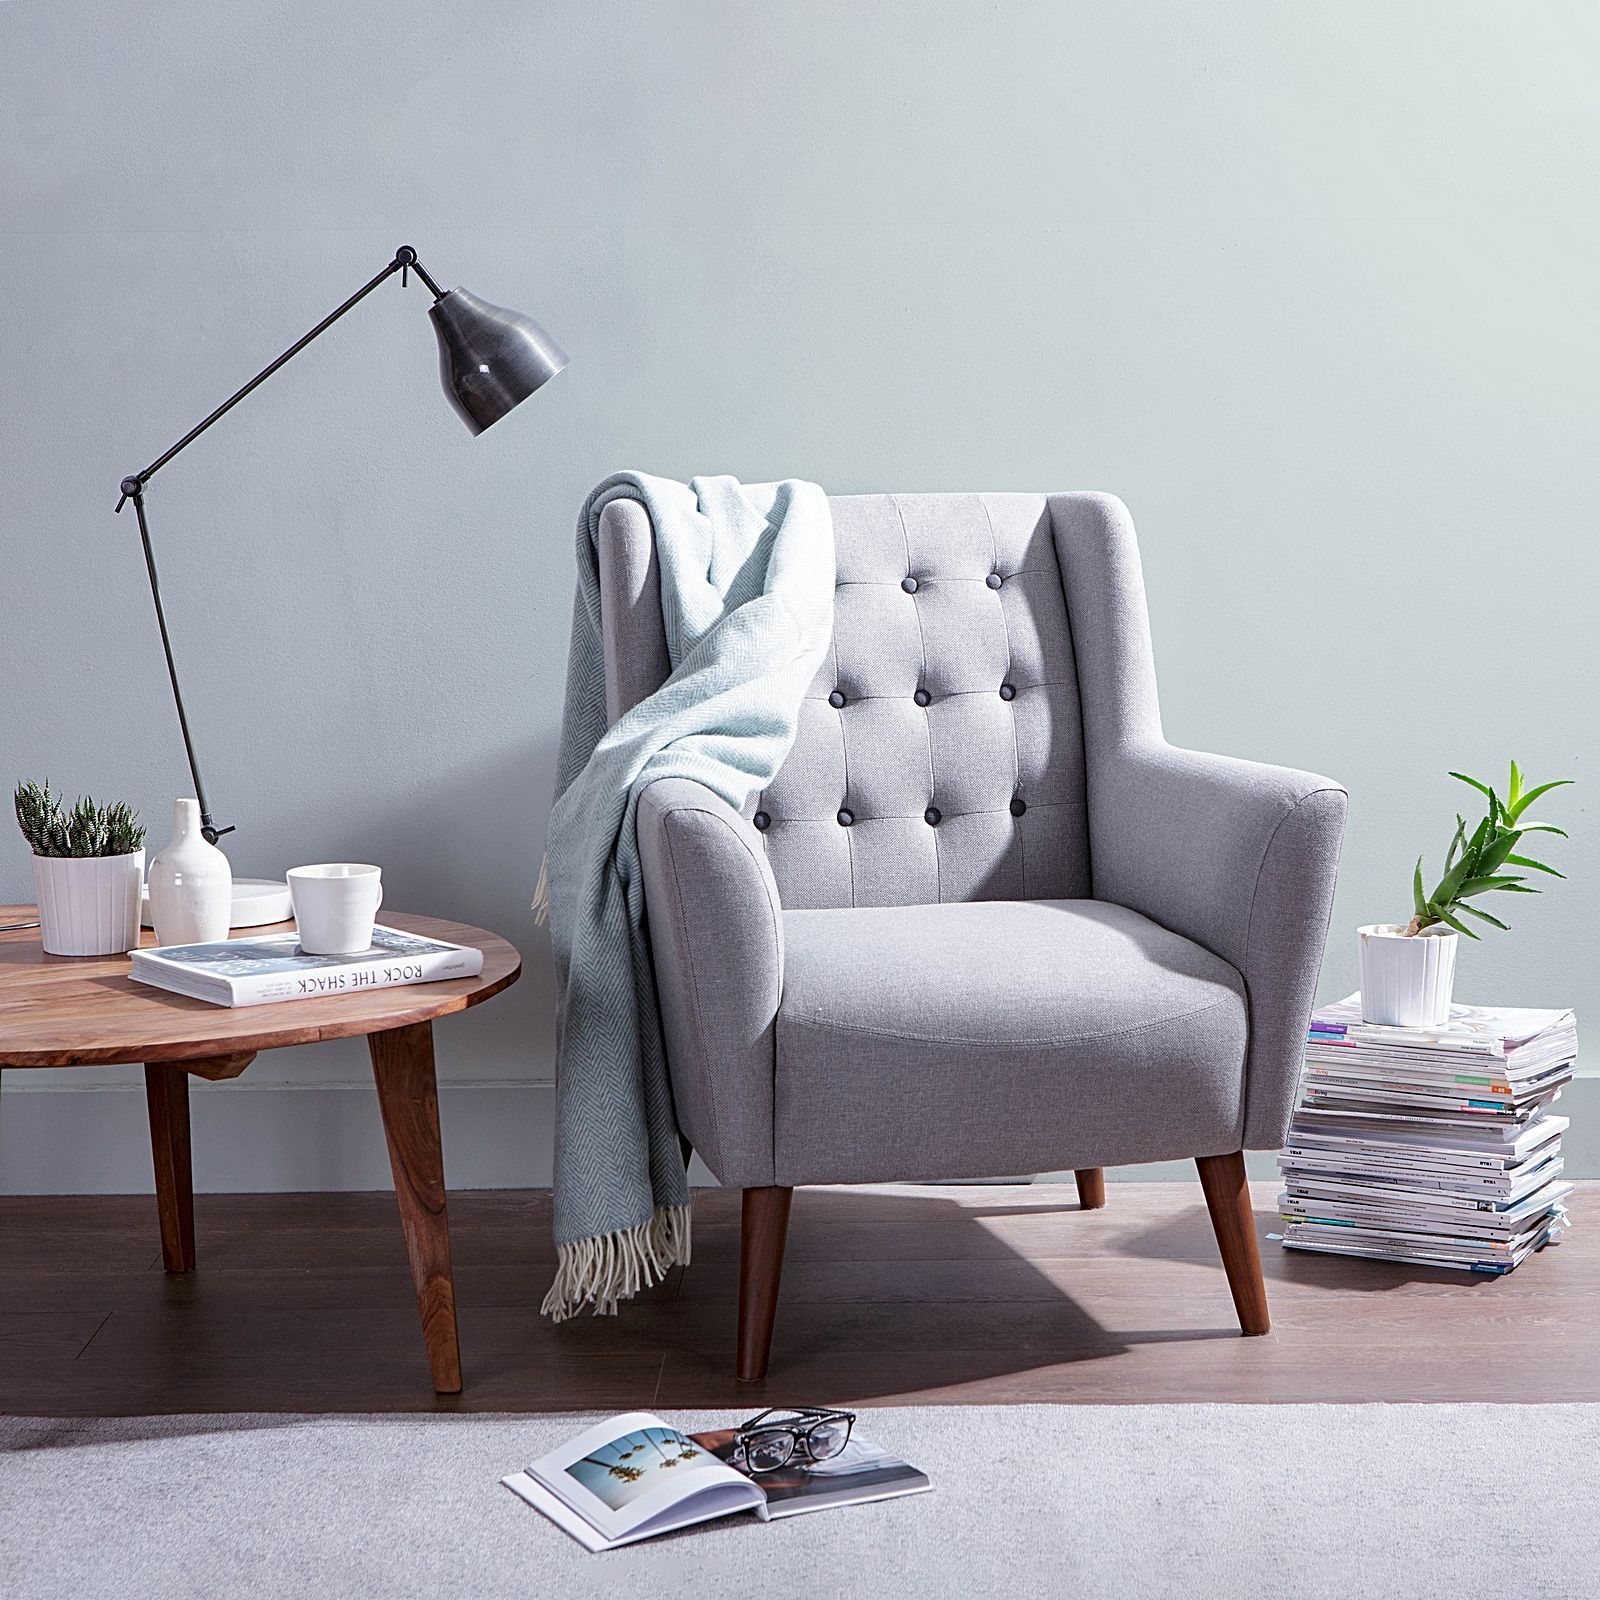 Exude mid century style when you recline in the refined fort of